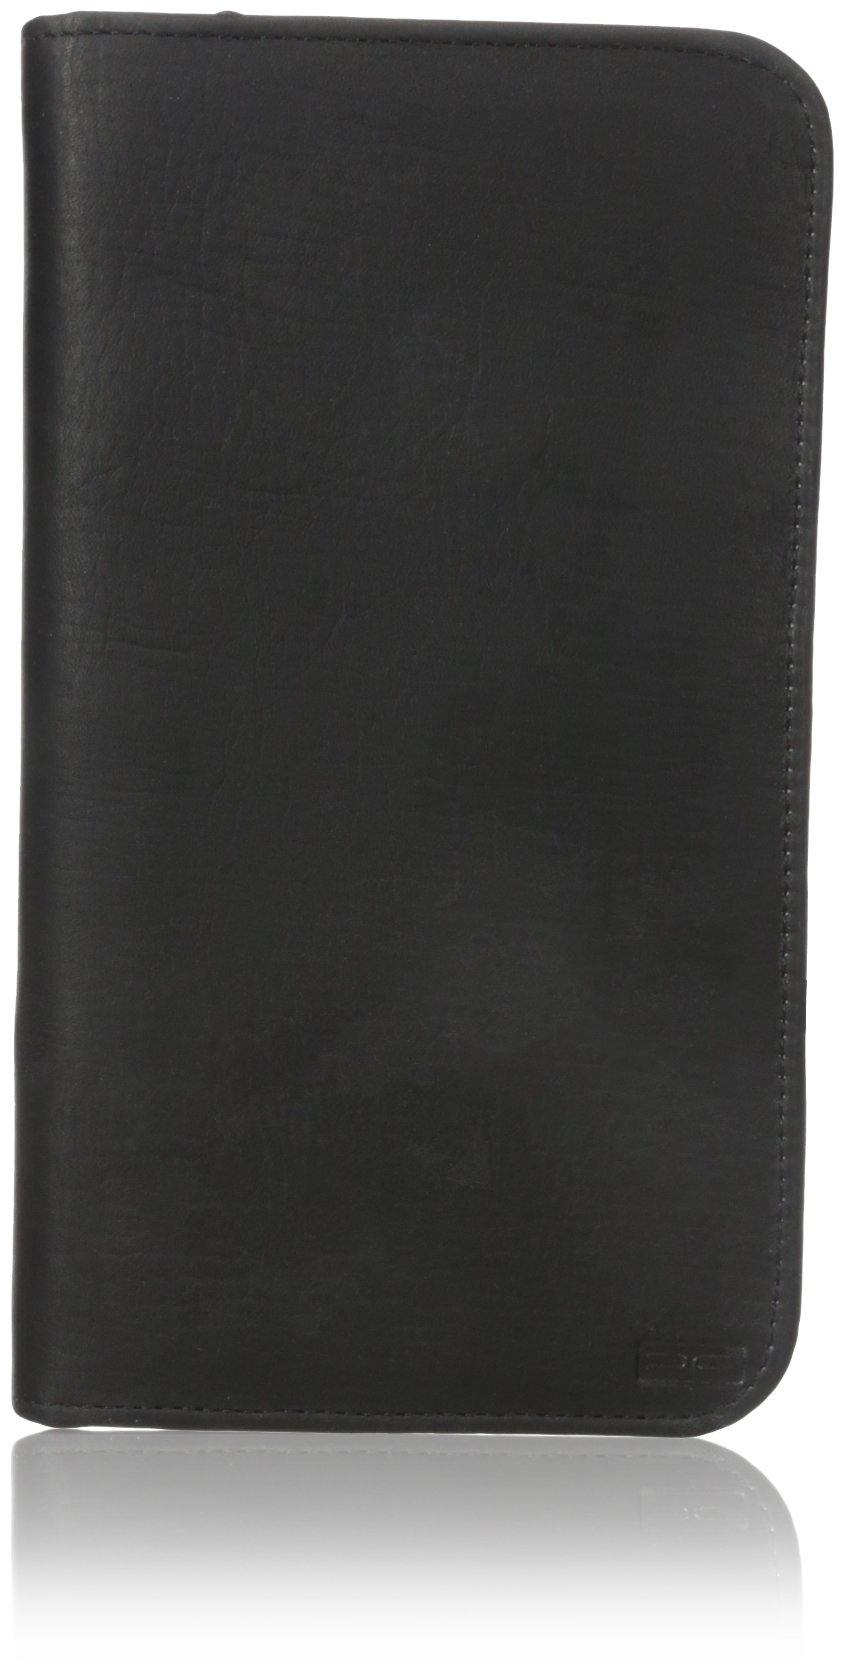 Claire Chase Travel Wallet, Black, One Size